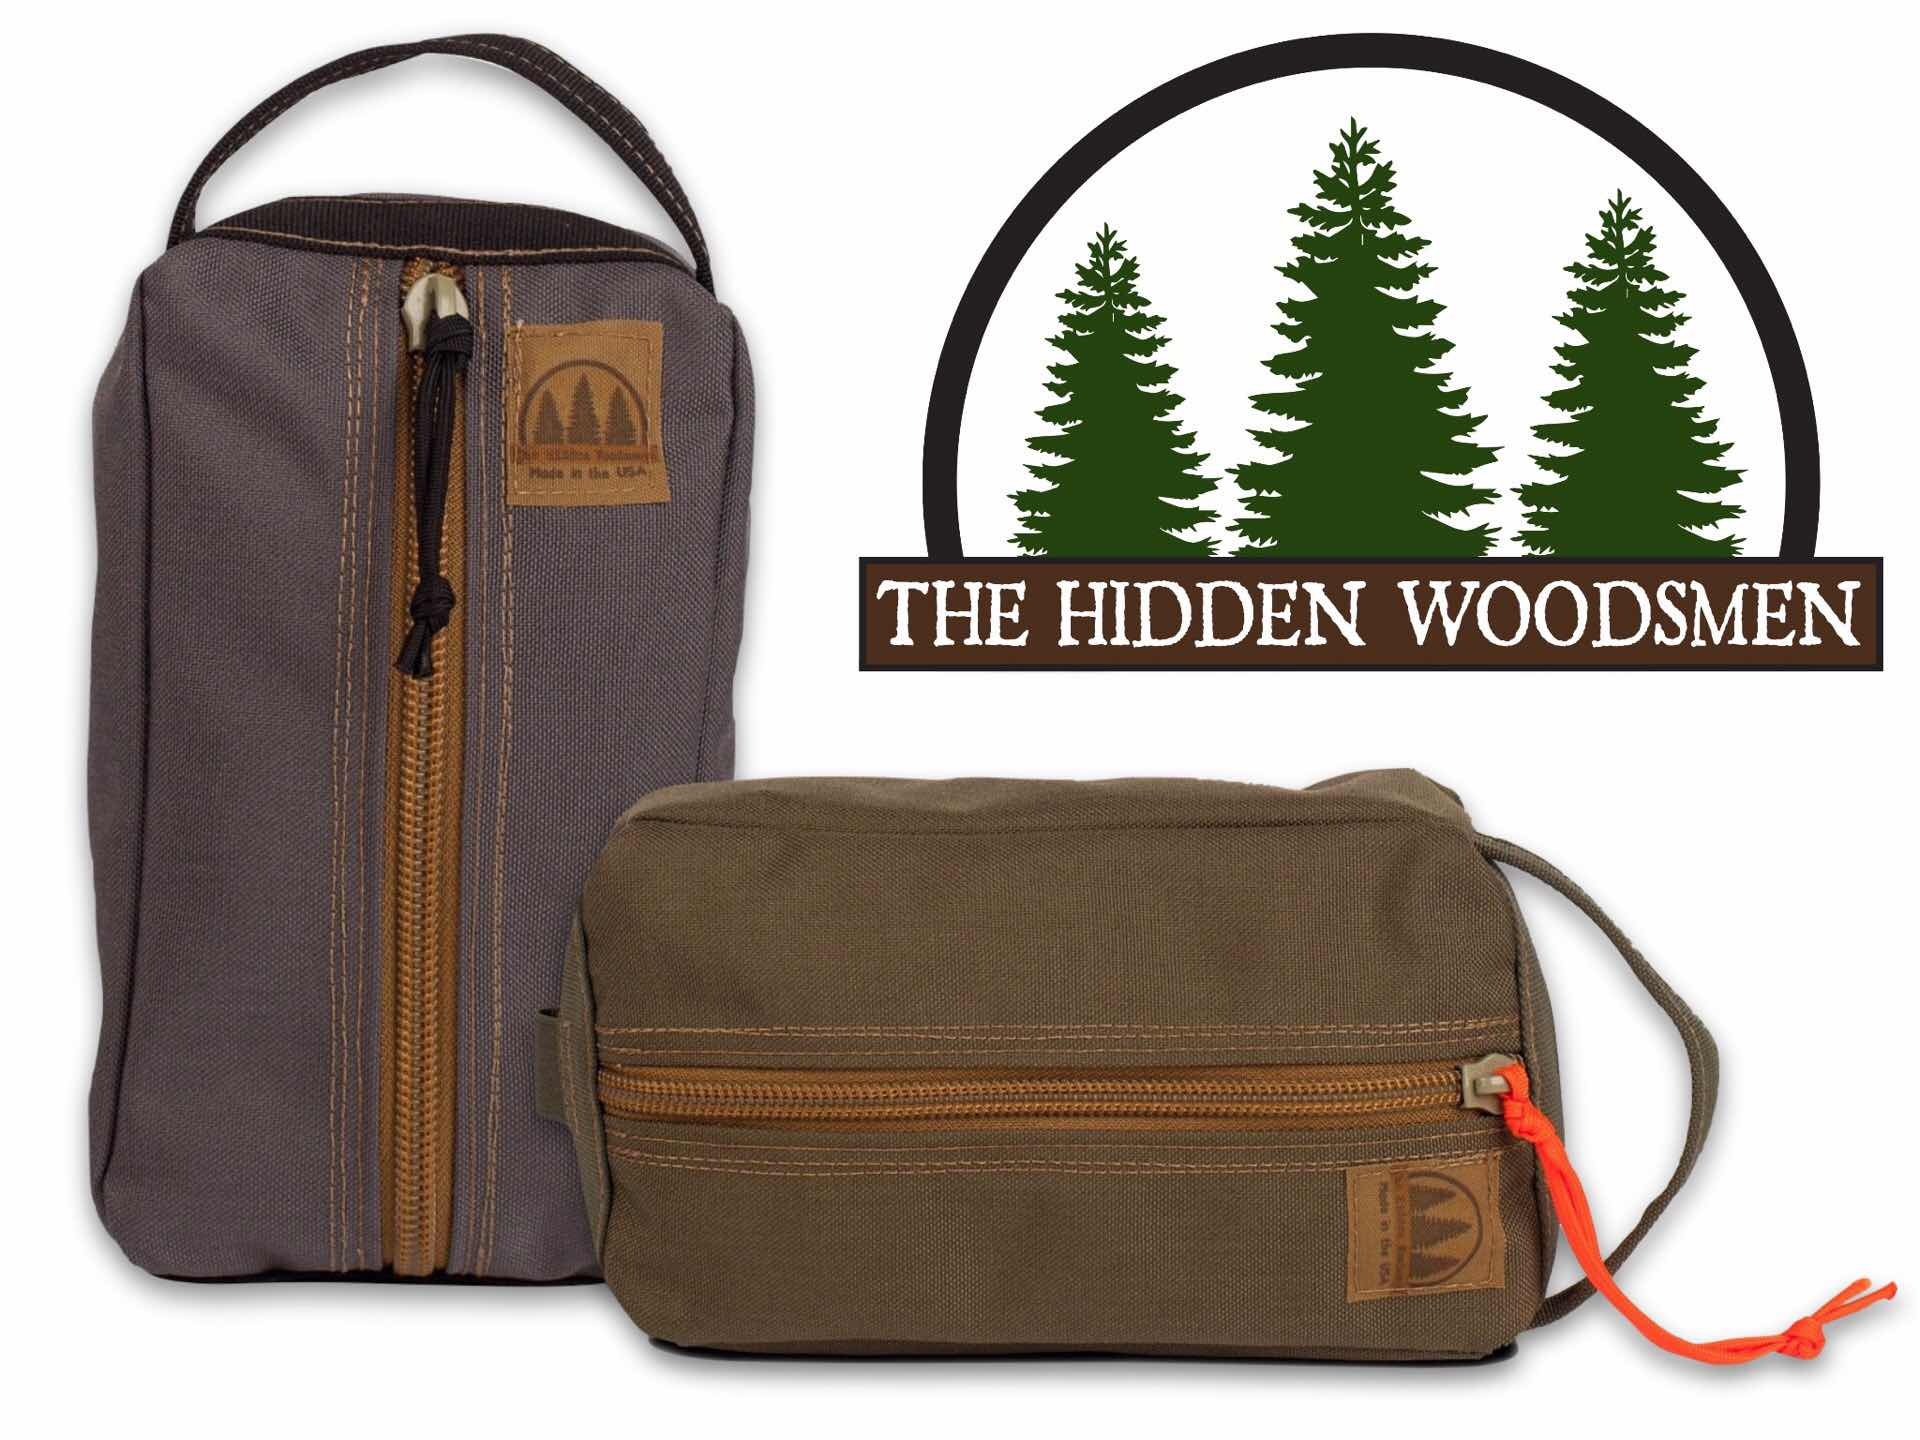 The Hidden Woodsmen's 2019-Edition Possible Pouch — Tools